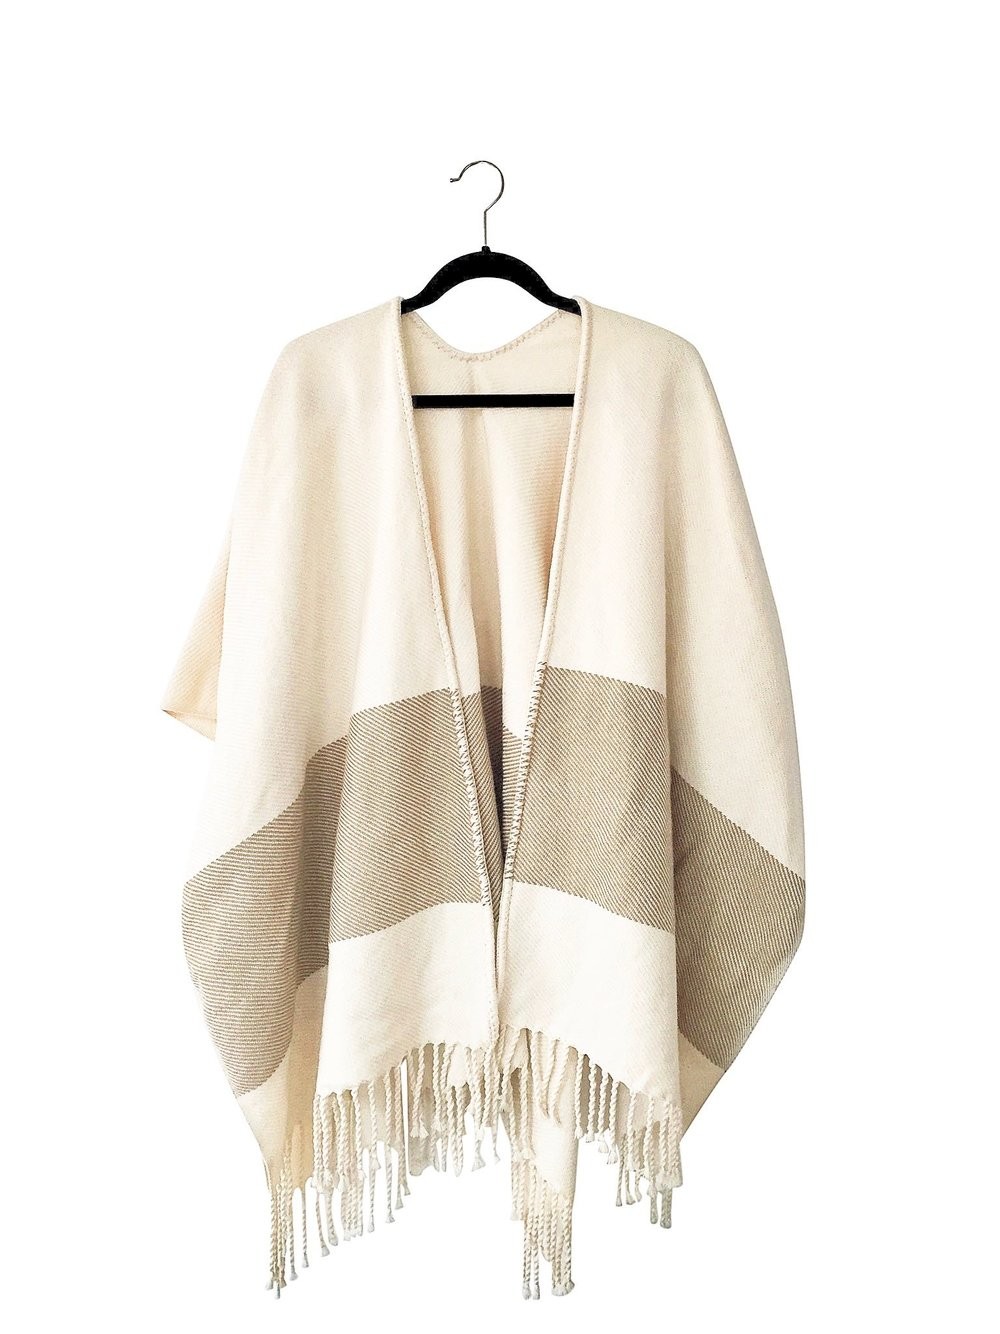 TRIGO PONCHO - Simplicity and sophistication collide when you wear the Trigo poncho.  A perfect poncho for cool spring days or breezy summer nights.